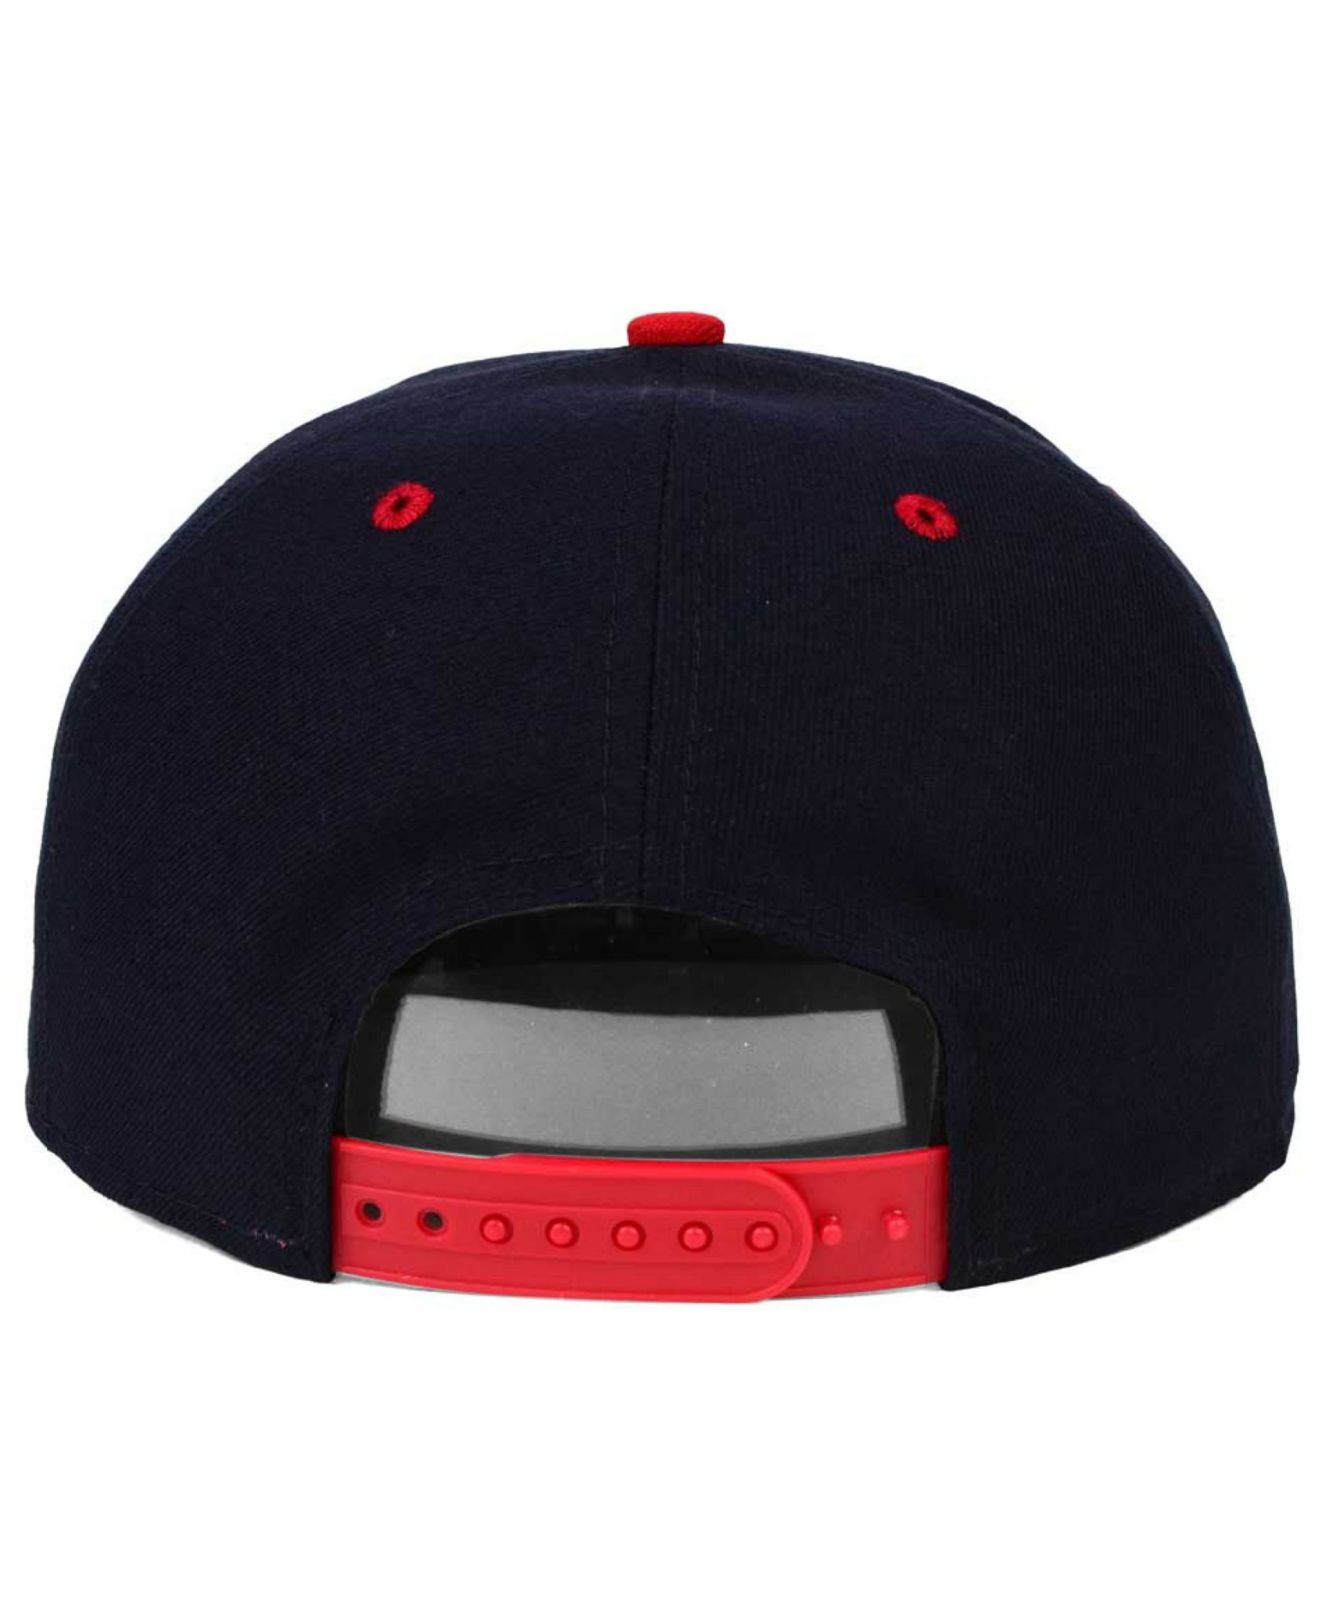 the best attitude 4b0b5 e4c5d get lyst ktz boston red sox floral viz 9fifty snapback cap in blue for men  577af